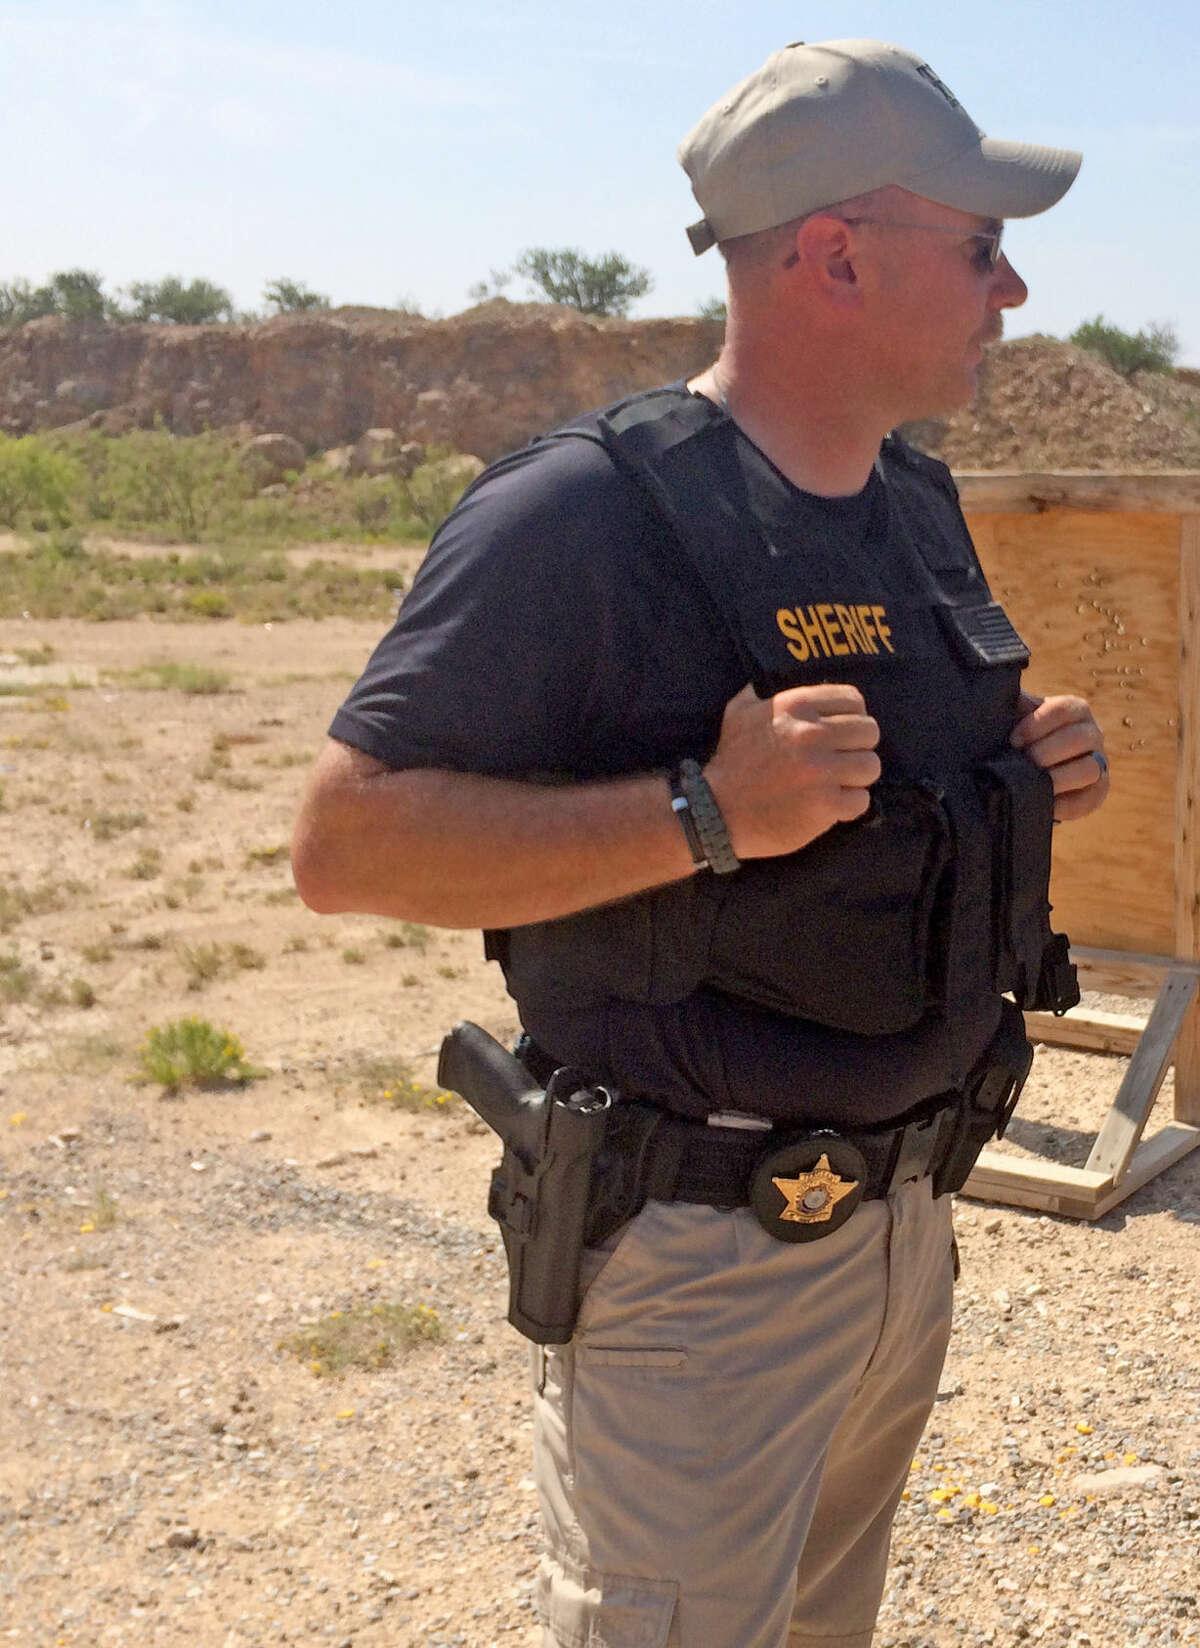 Sgt. Mike Naylor of the Midland County Sheriff's Department in a courtesy photo. Courtesty photo